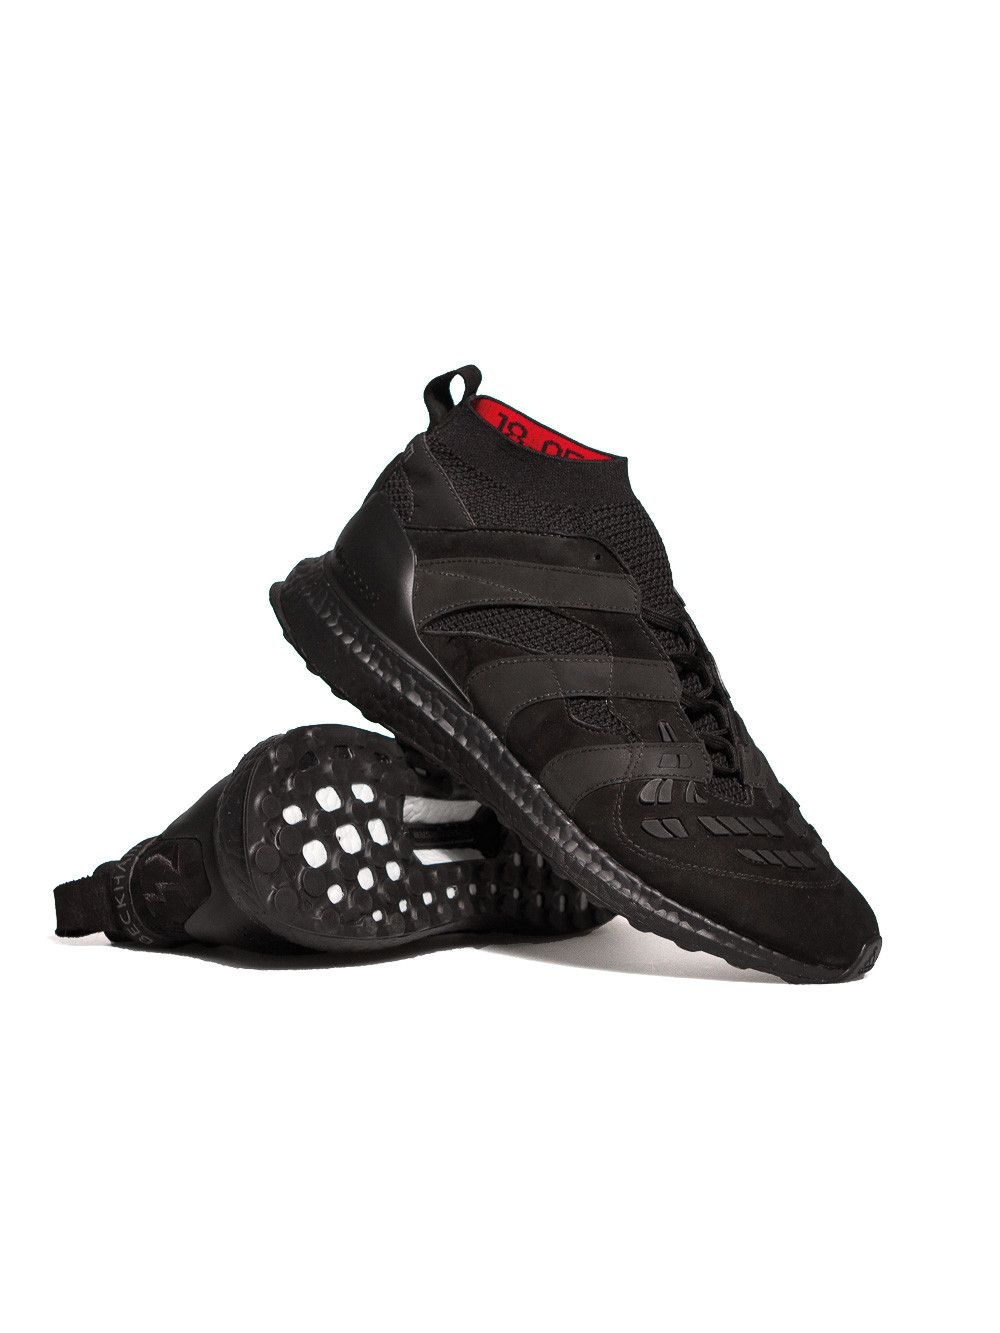 ADIDAS ORIGINALS Adidas x David Beckham DB Accelerator UB sneakers.   adidasoriginals  shoes   edc54d730